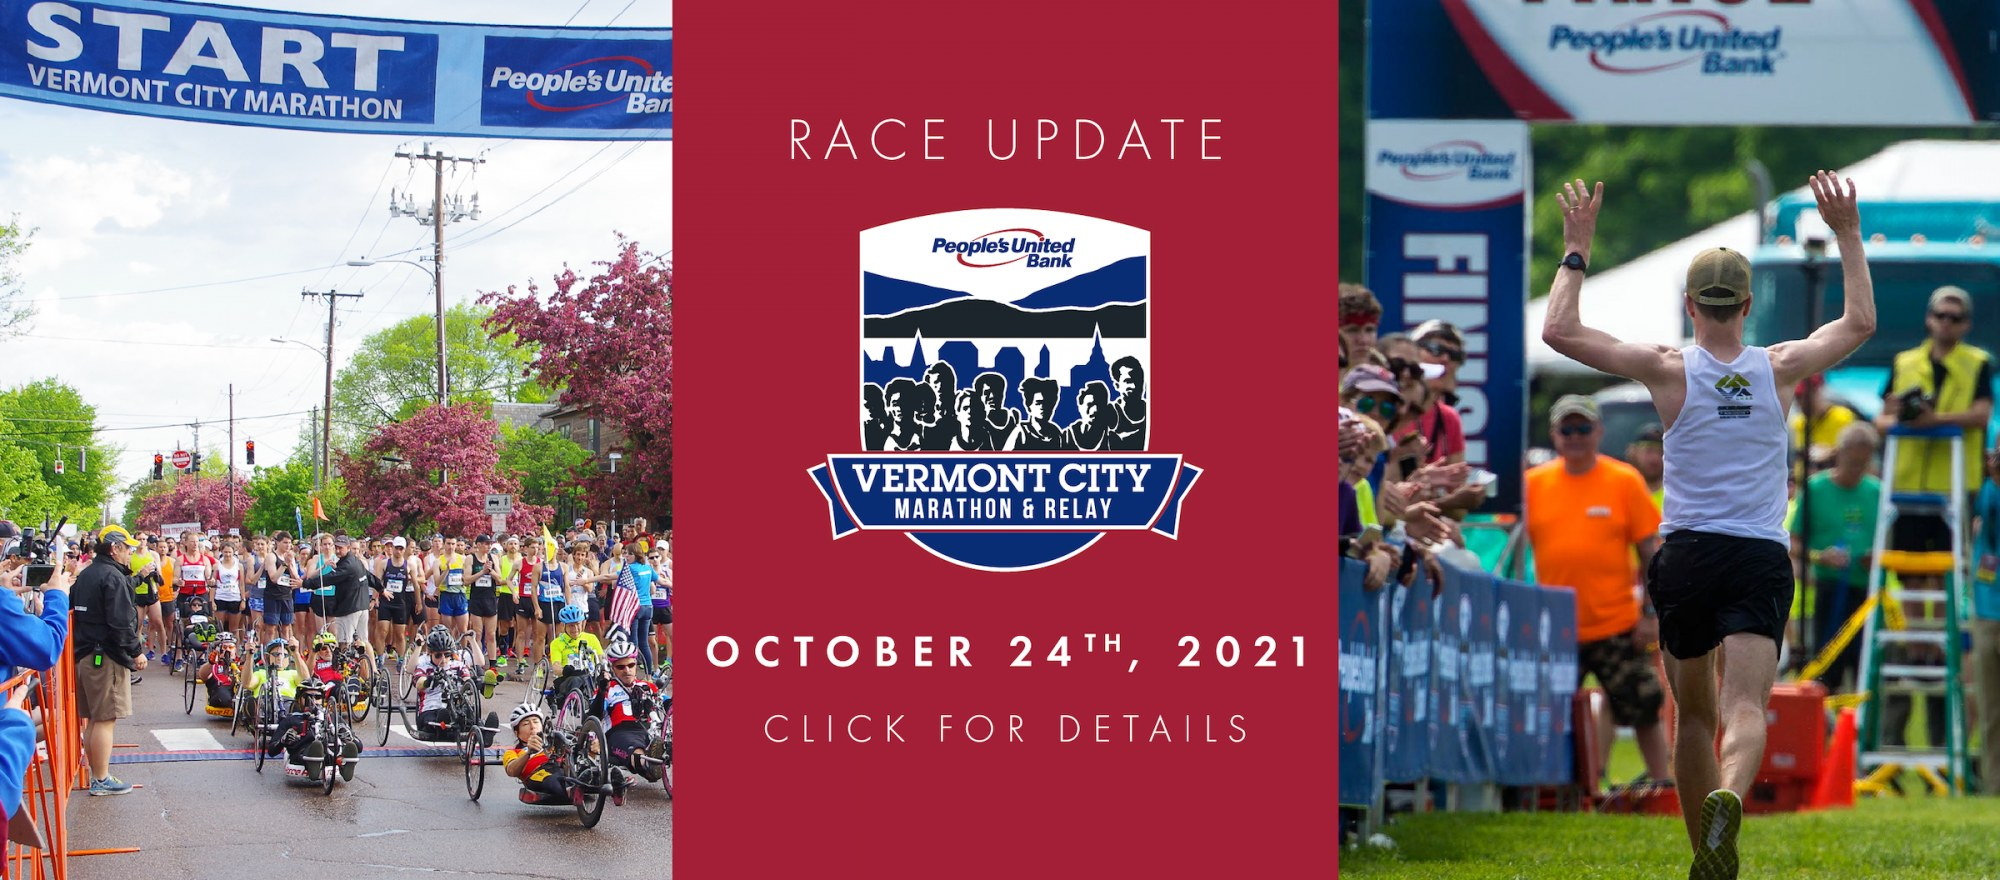 Image of a runner approaching the finish line with the People's United Bank Vermont City Marathon & Relay logo and new date of October 24th, 2021.